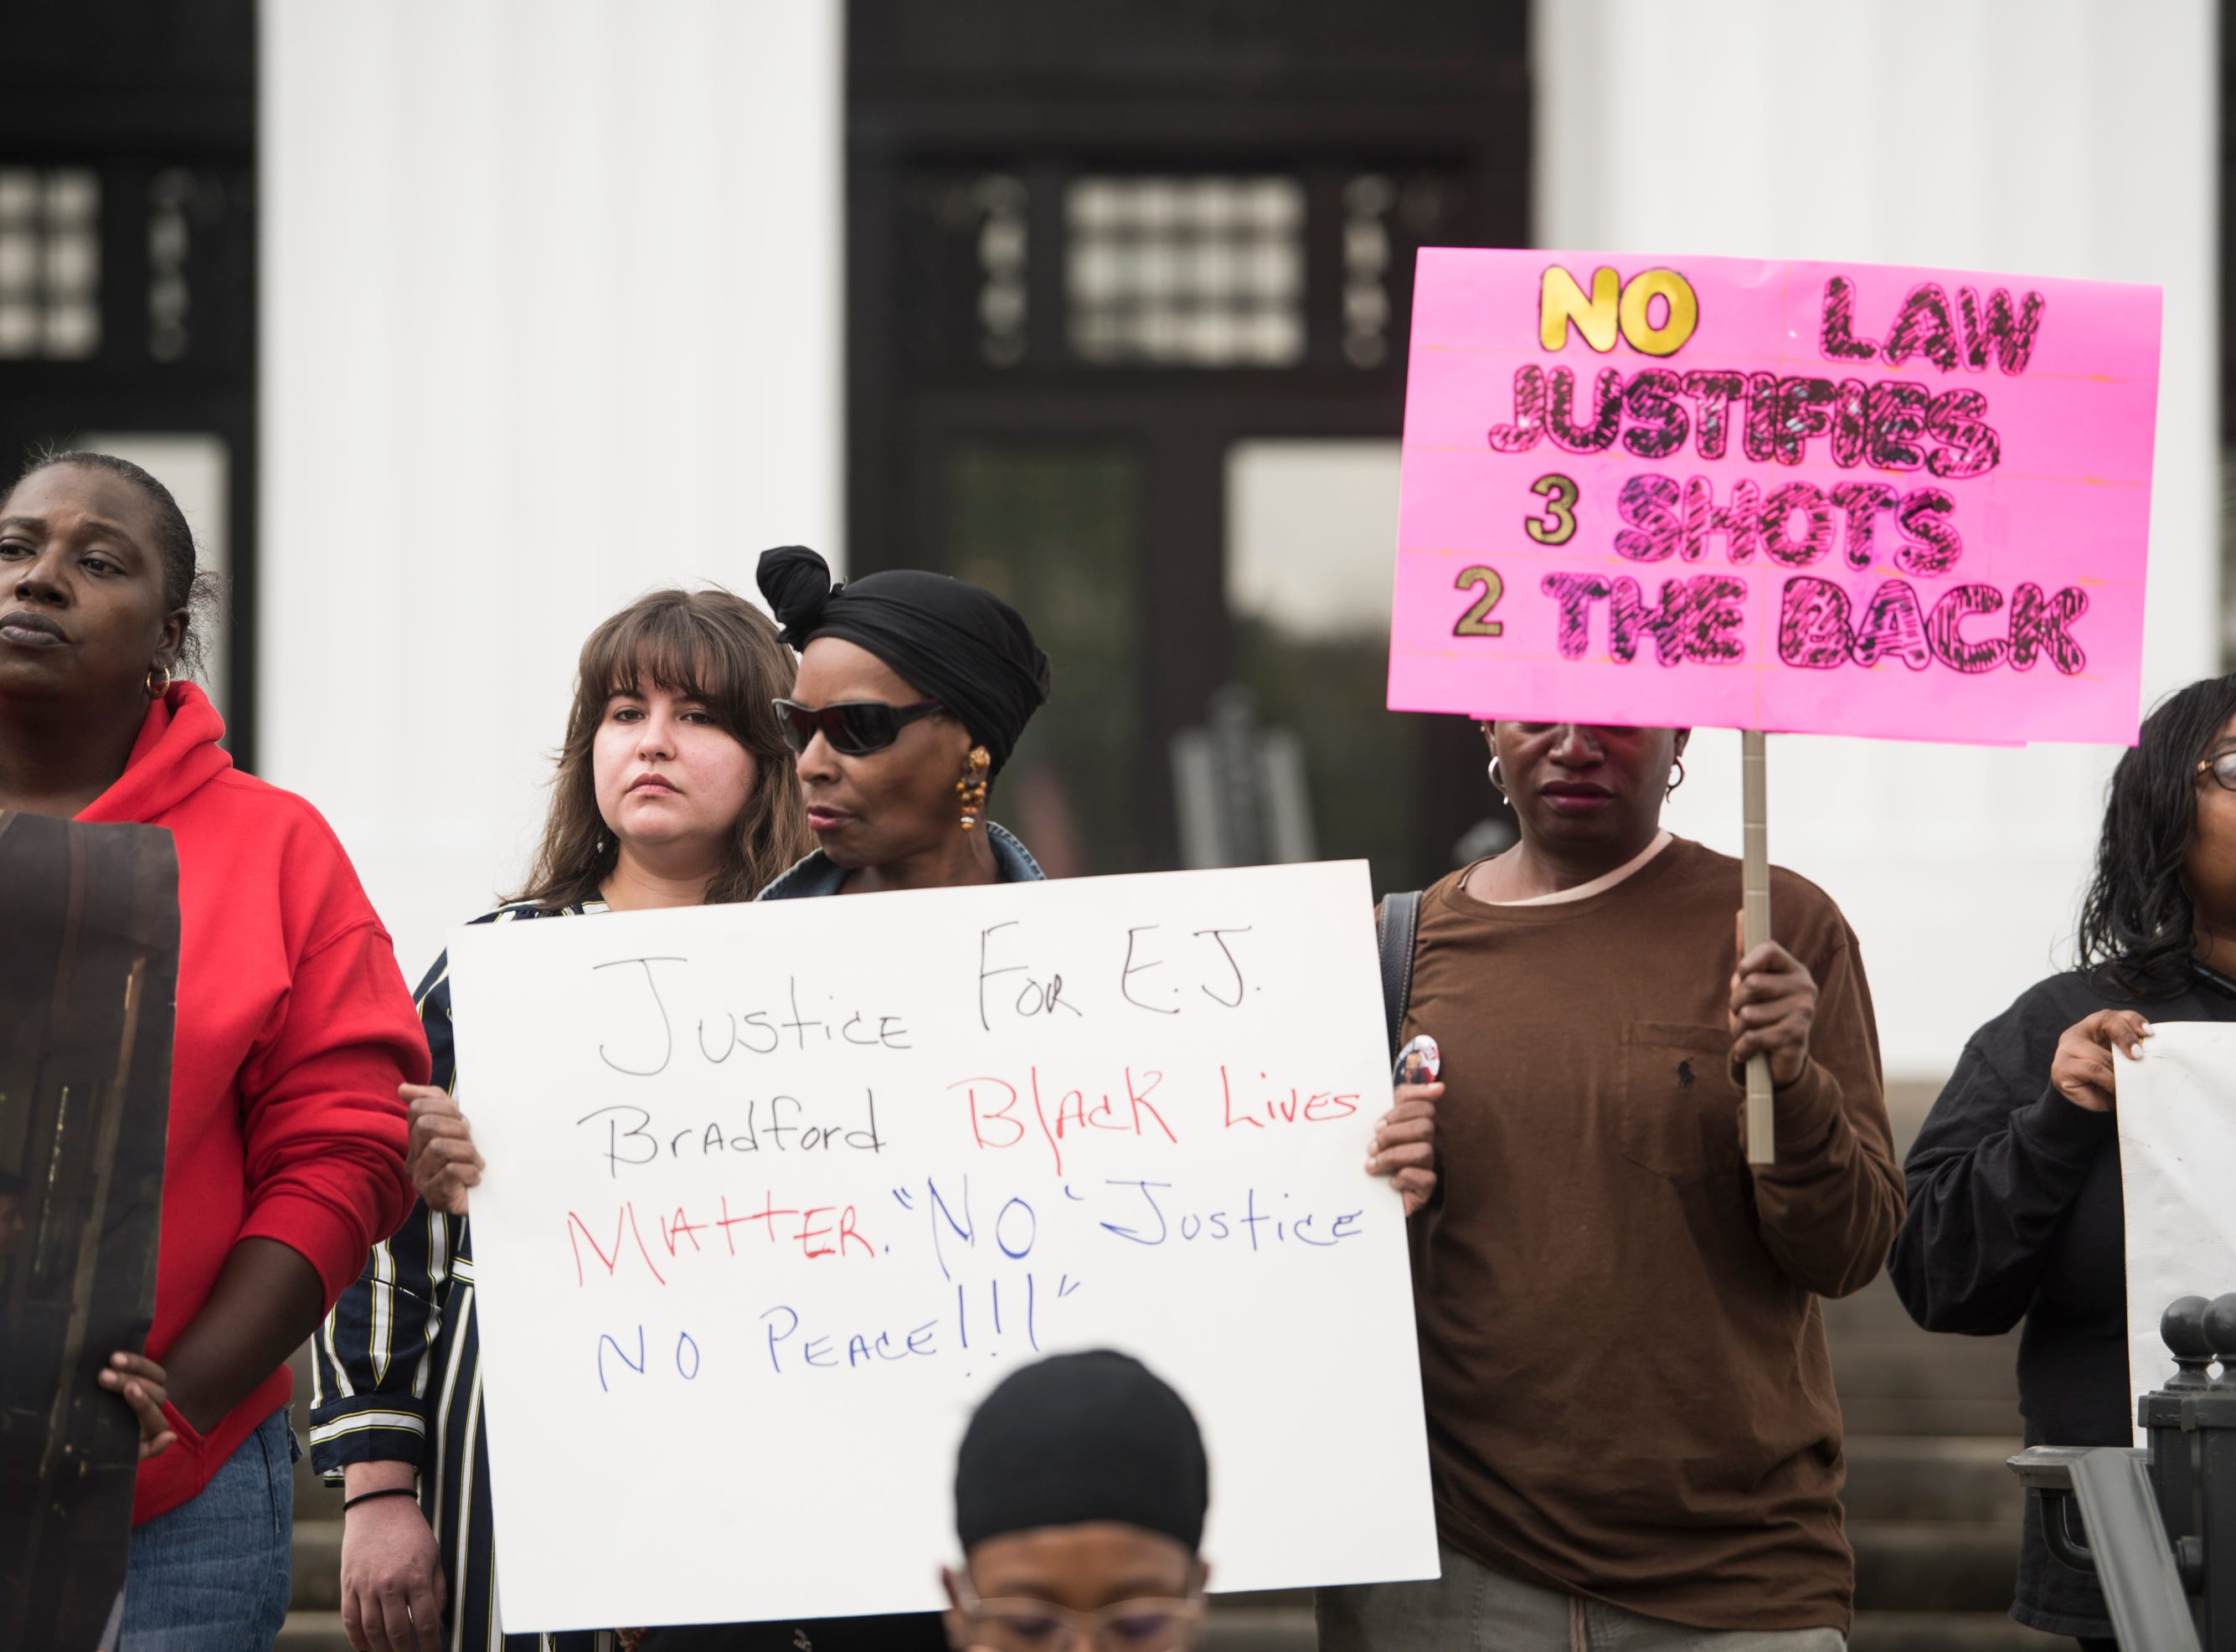 Protestors gather on the steps of the Attorney General's office during a protest in Montgomery, Ala., on Wednesday, Feb. 6, 2019. EJ Bradford was shot and killed by police Nov. 22, 2018 in a Hoover, Ala. mall. Alabama Attorney General Steve Marshall announced Tuesday there would be no charges filed against the officer involved in the shooting.